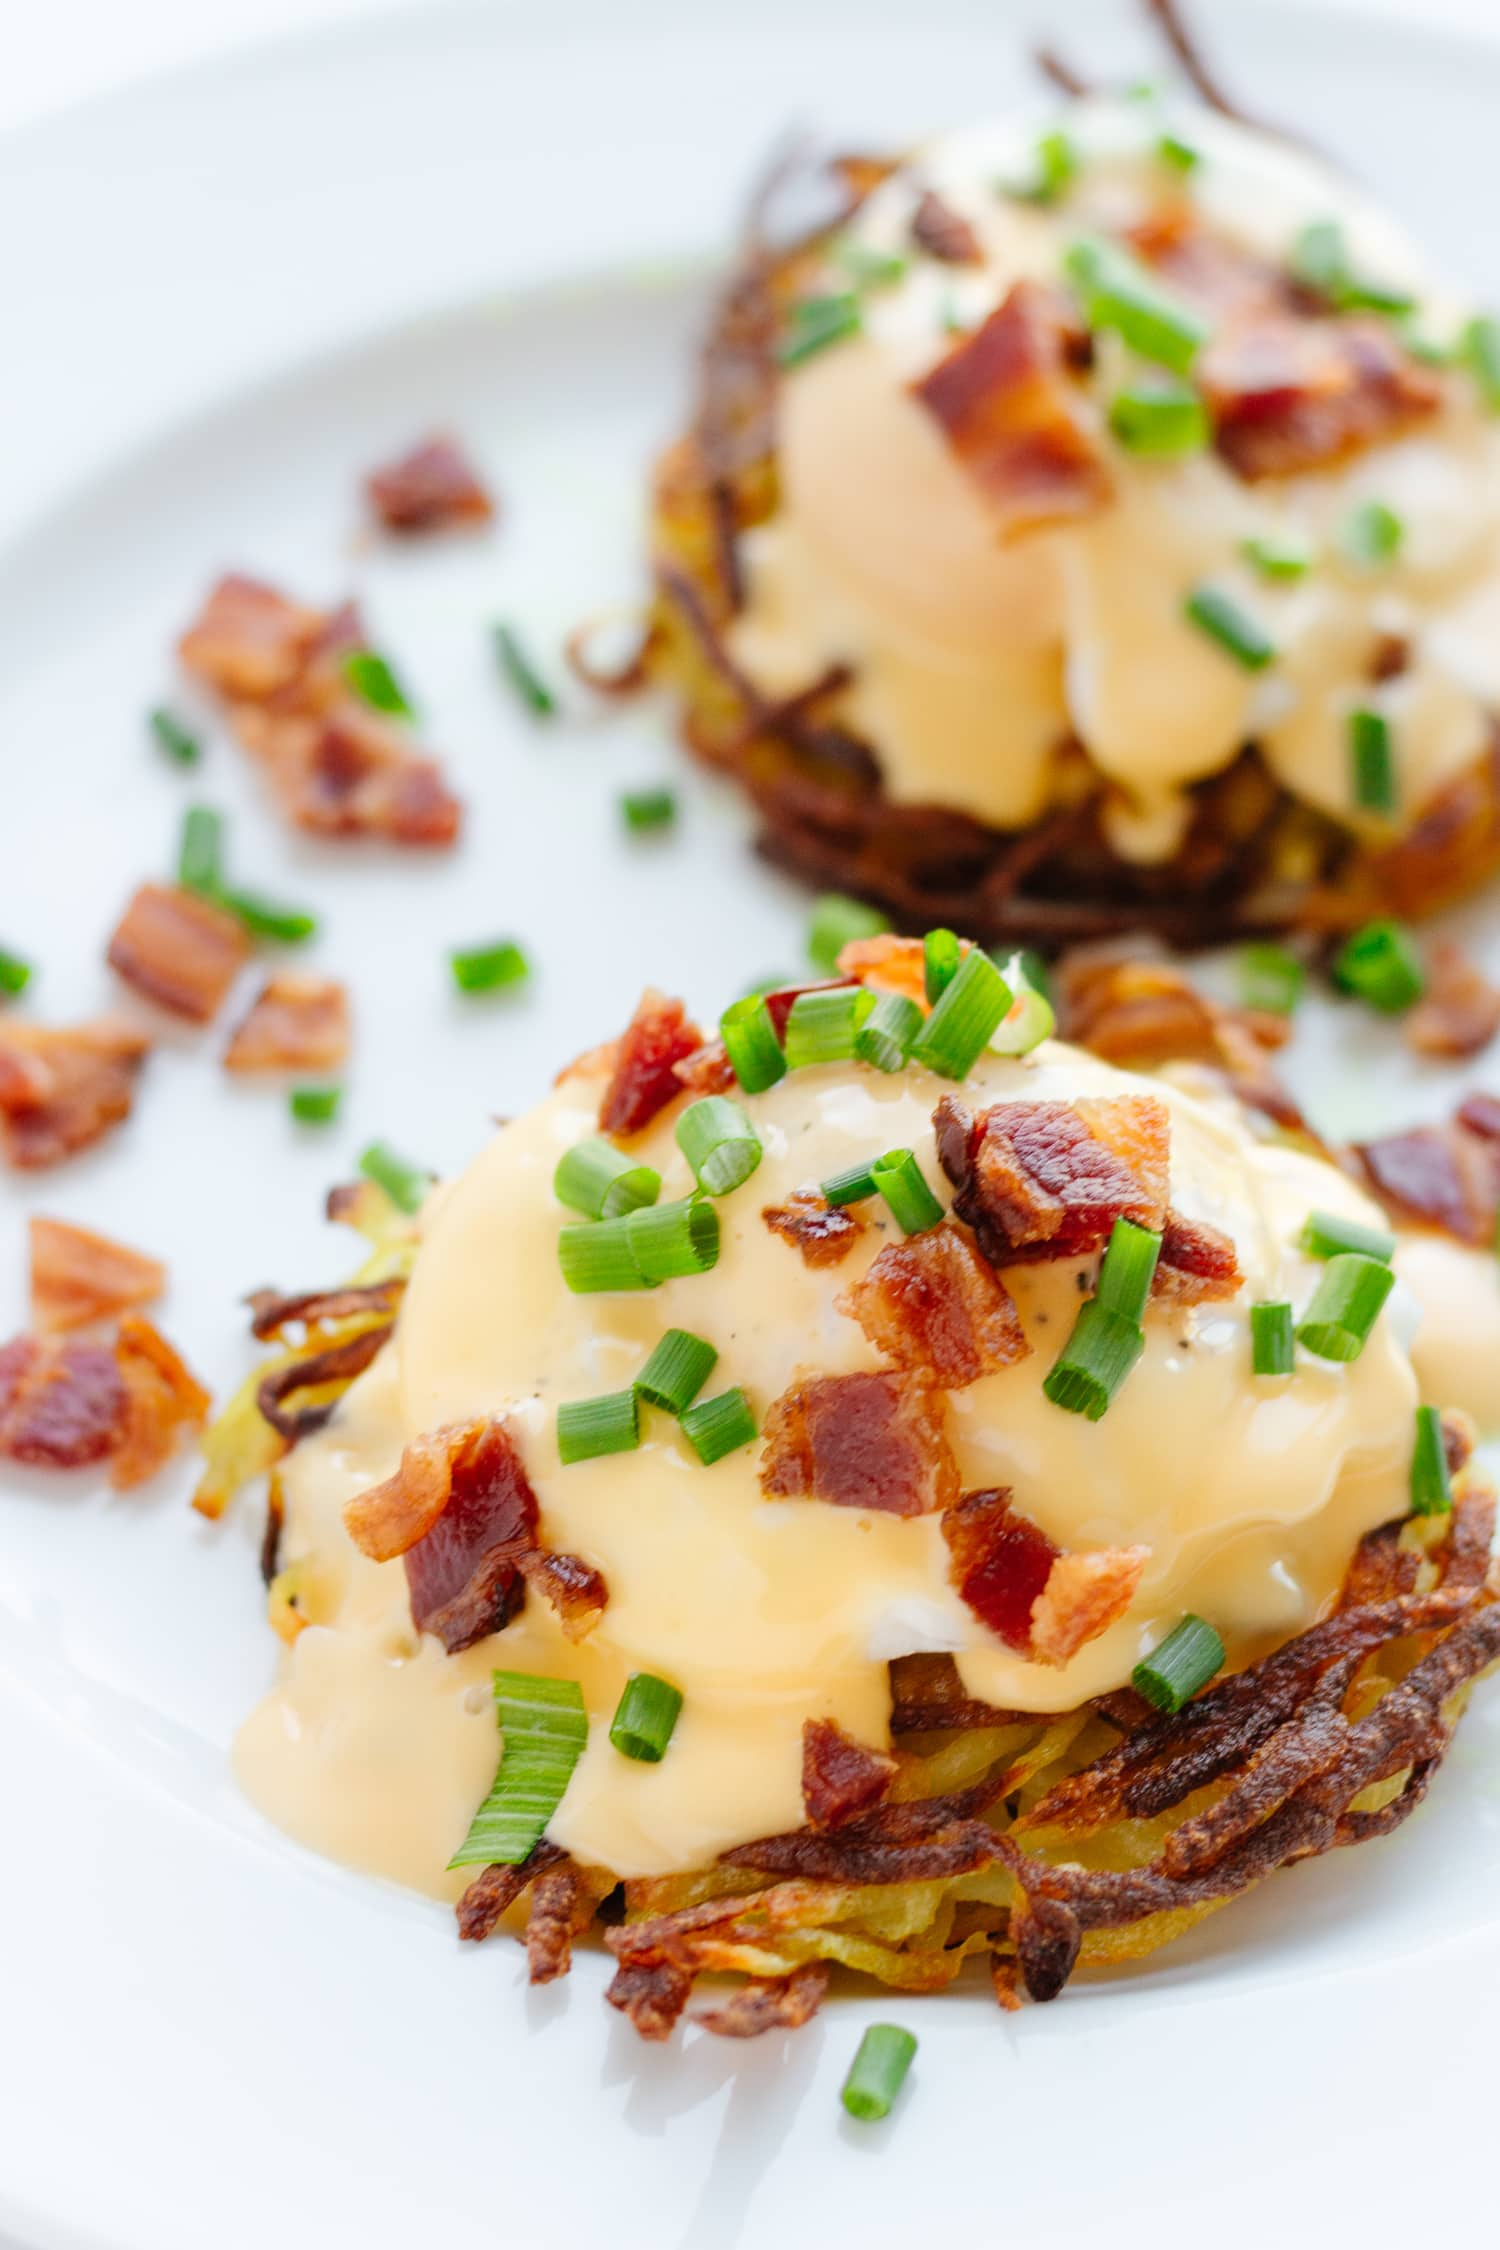 rosti with poached egg, hollandaise sauce, bacon bits and chives on a white plate